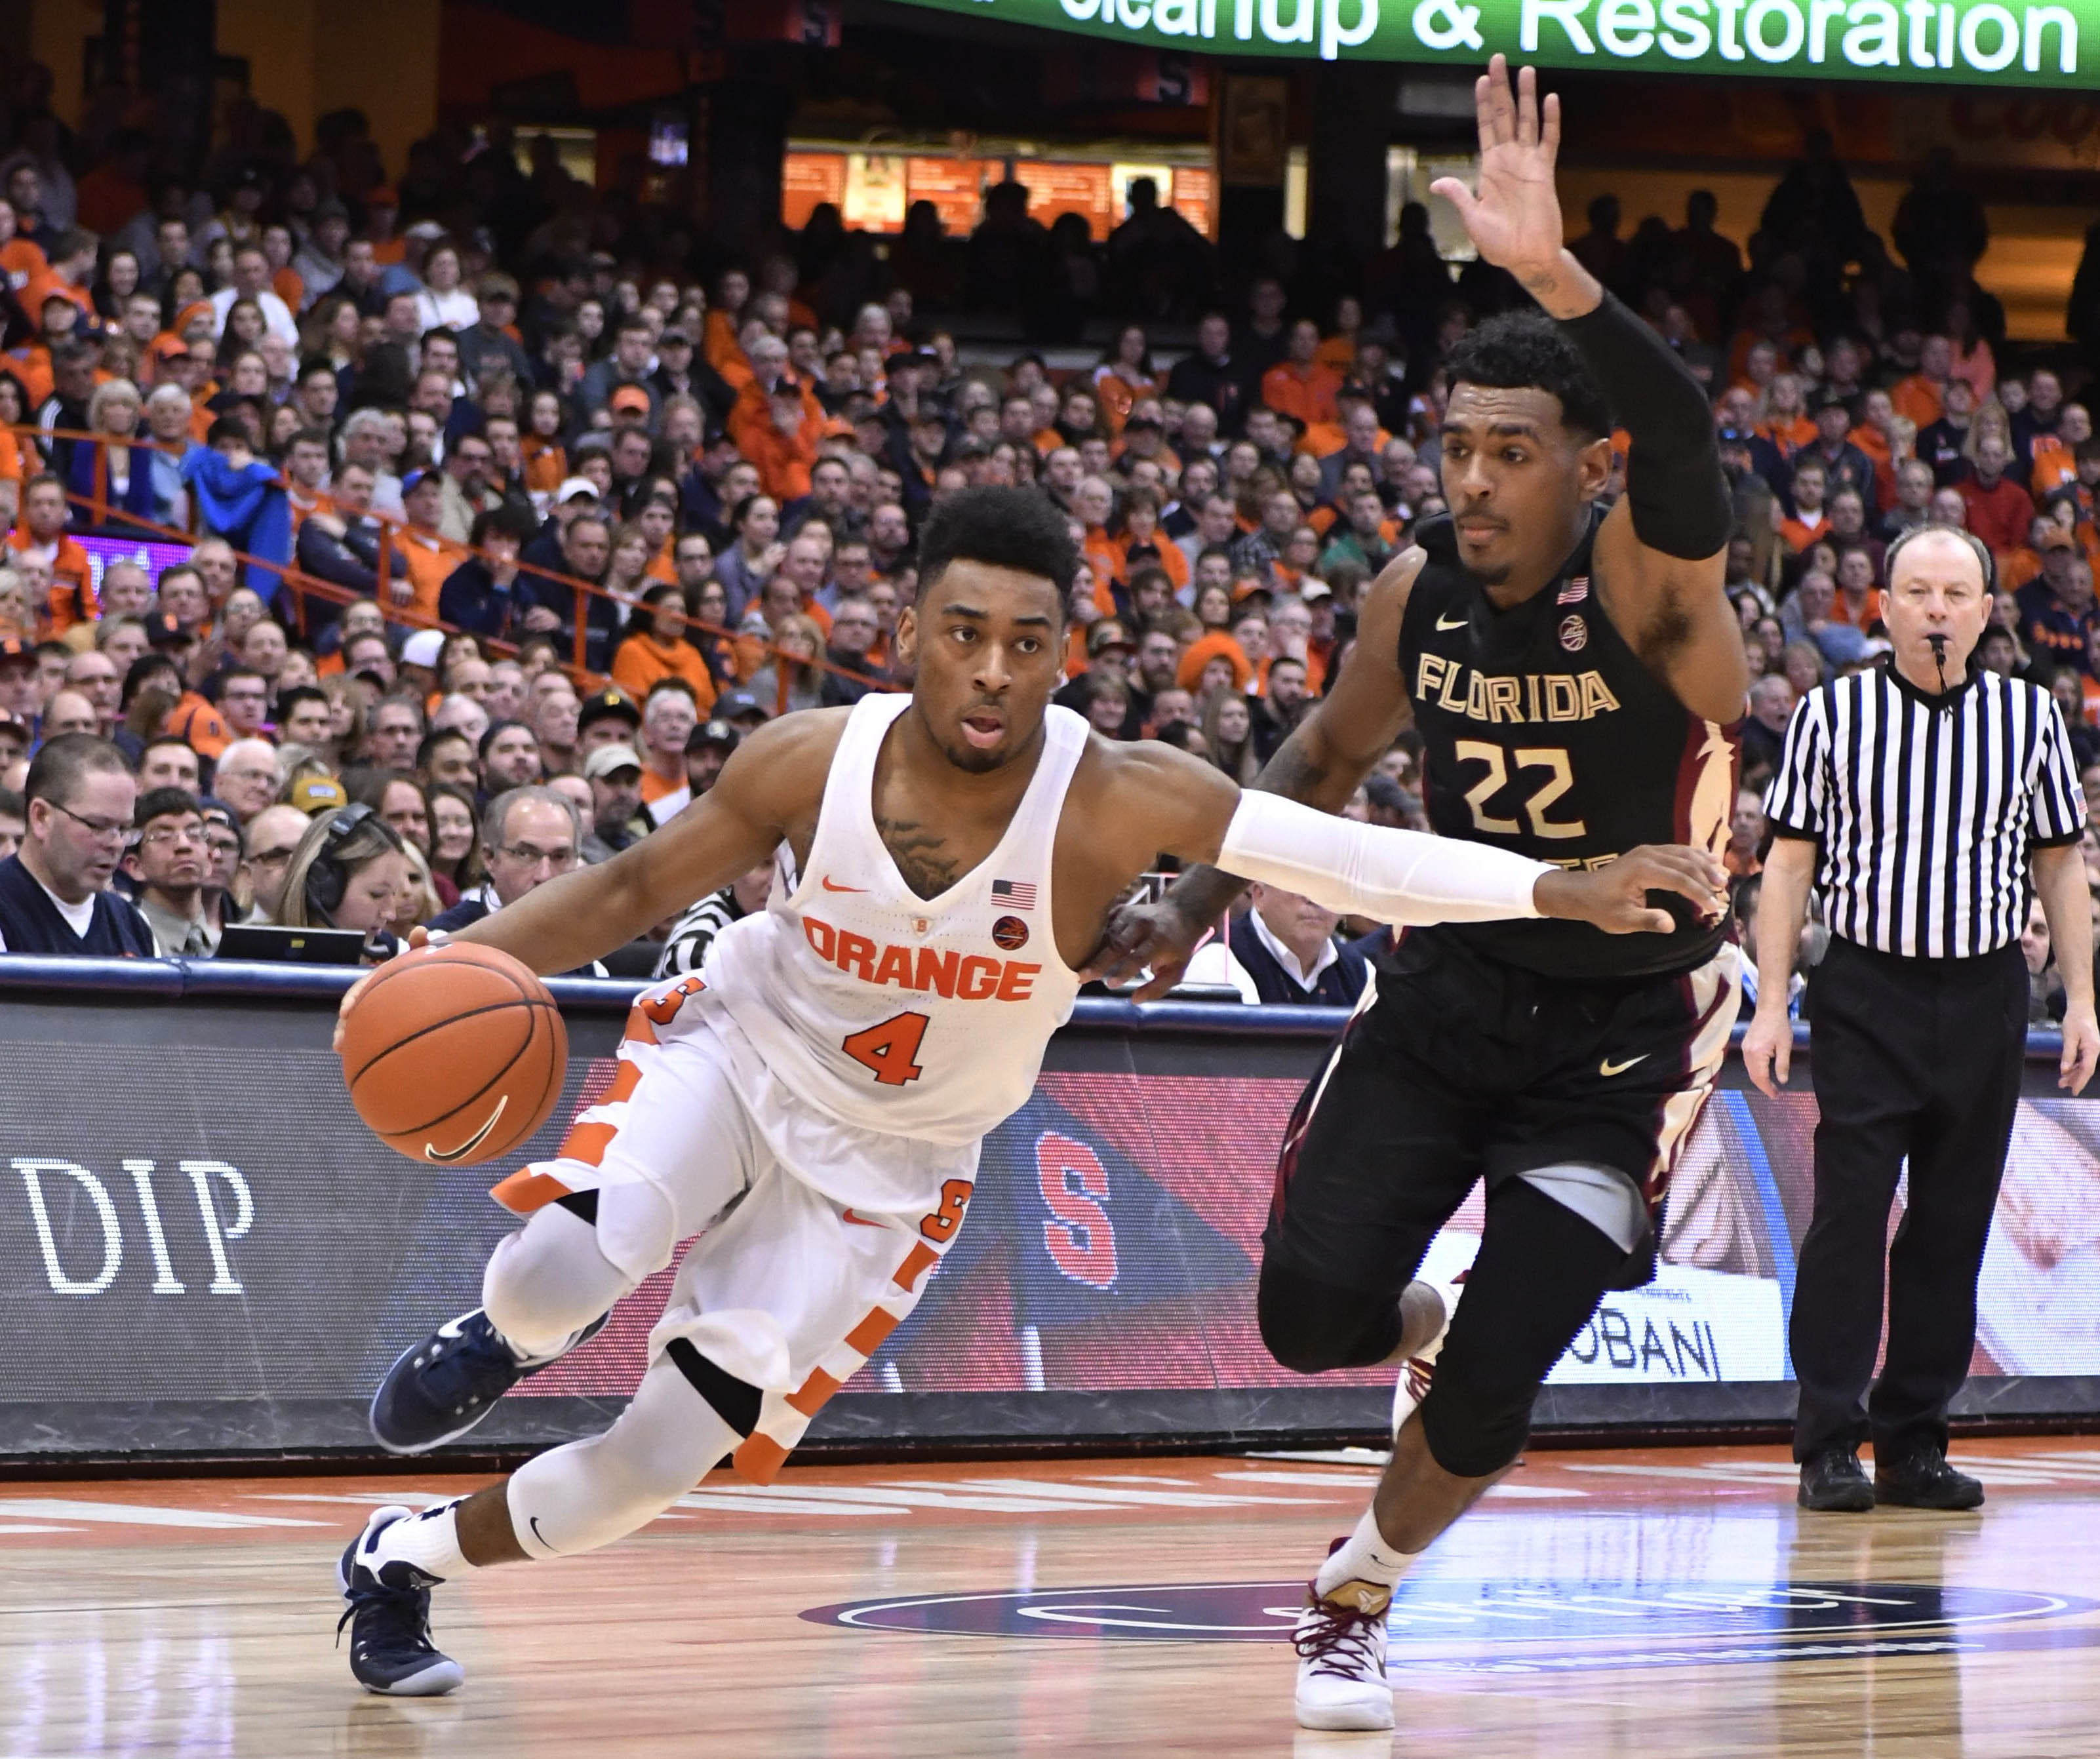 Jan 28, 2017; Syracuse, NY, USA; Syracuse Orange guard John Gillon (4) drives the ball past Florida State Seminoles guard Xavier Rathan-Mayes (22) during the second half of a game at the Carrier Dome. Syracuse won the contest 82-72. Mandatory Credit: Mark Konezny-USA TODAY Sports